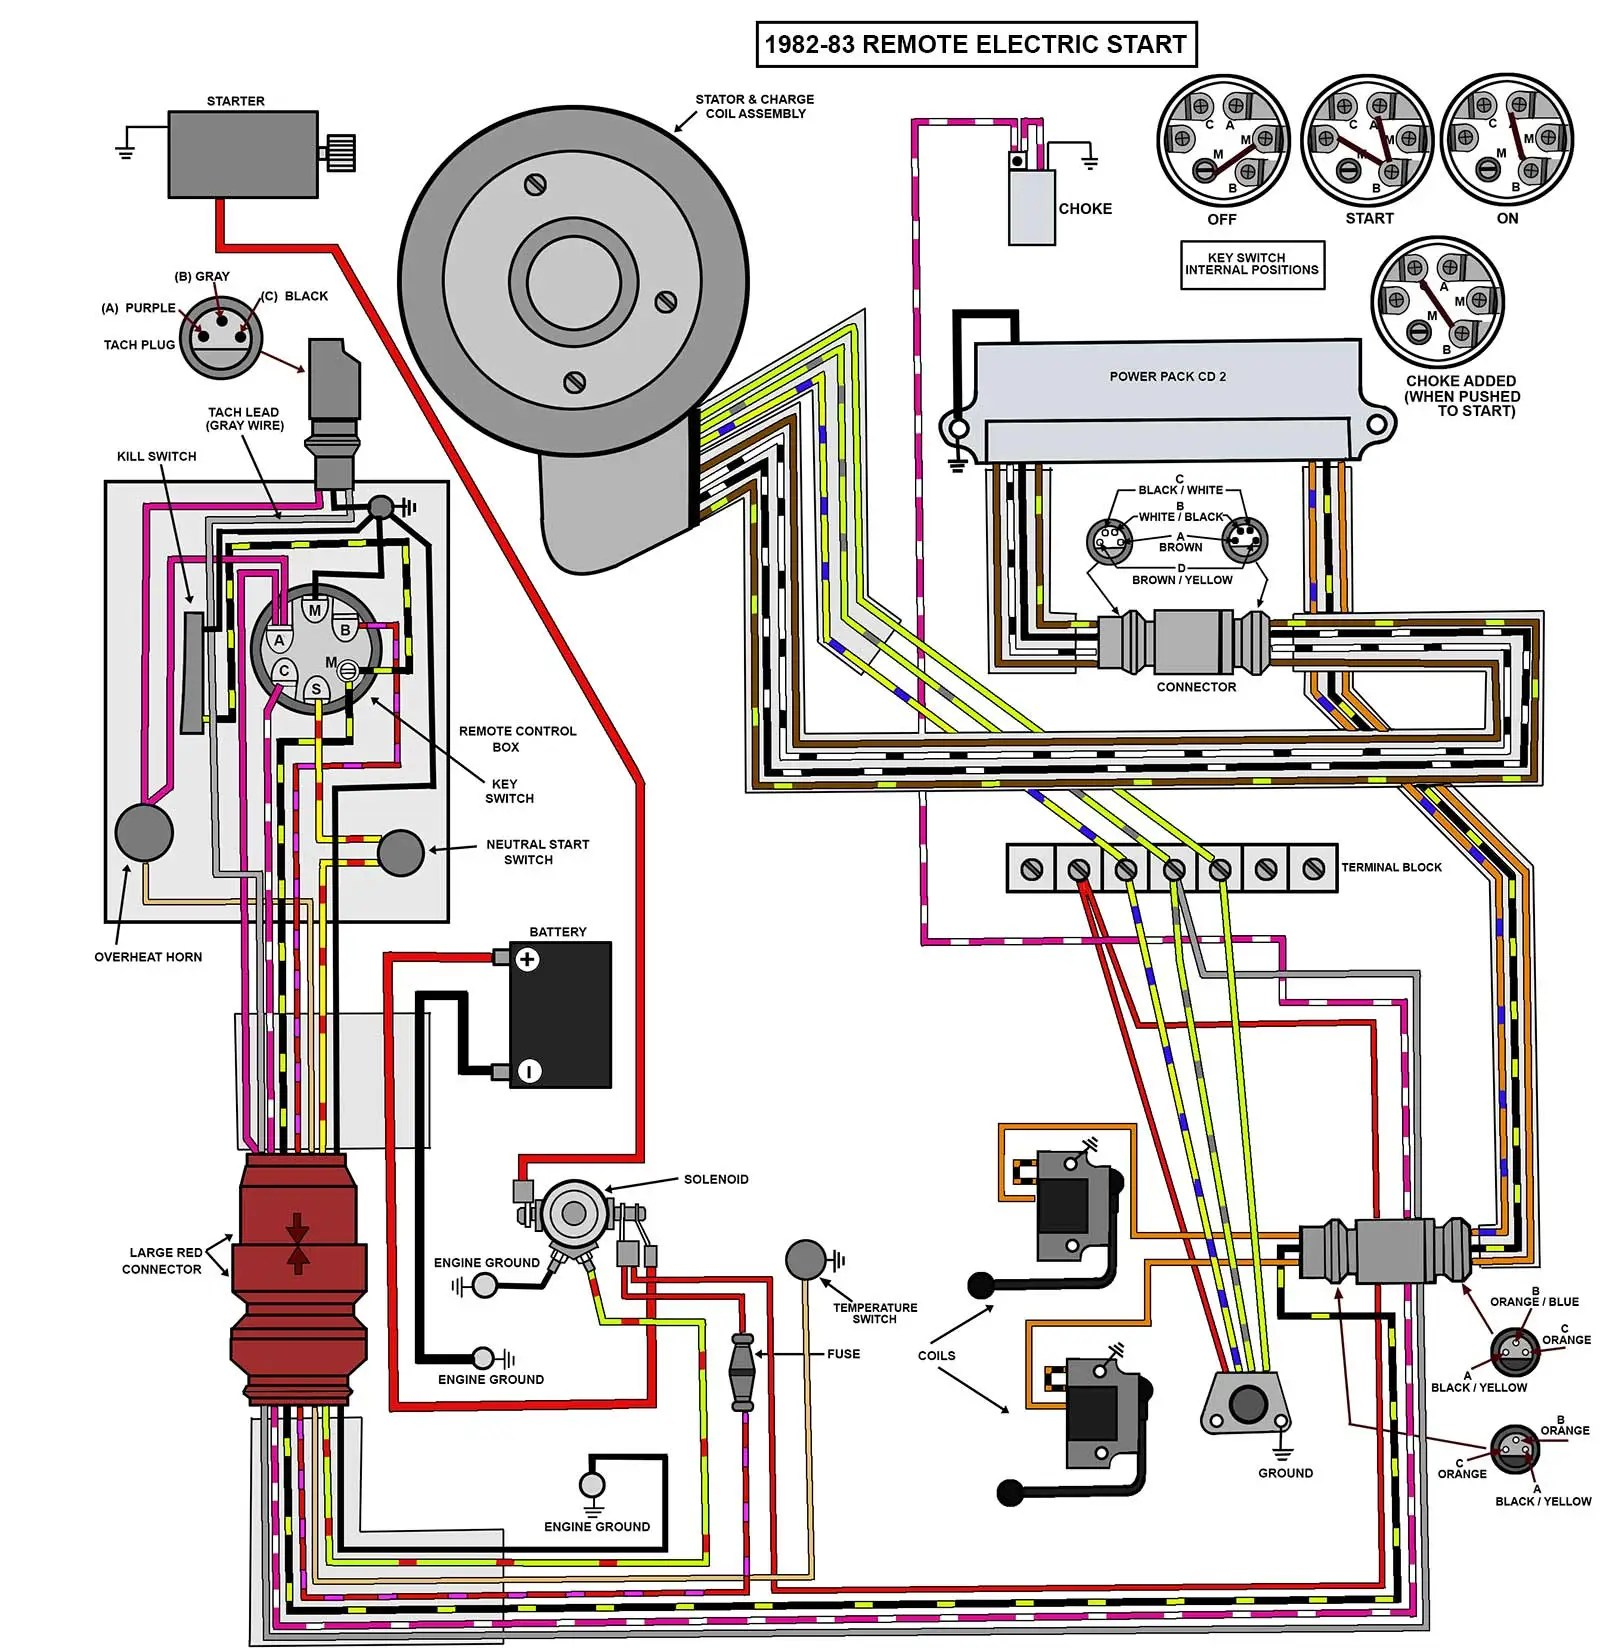 hight resolution of diagram of 1969 20r69b johnson outboard powerhead group diagram andp johnson motor diagram wiring diagram auto